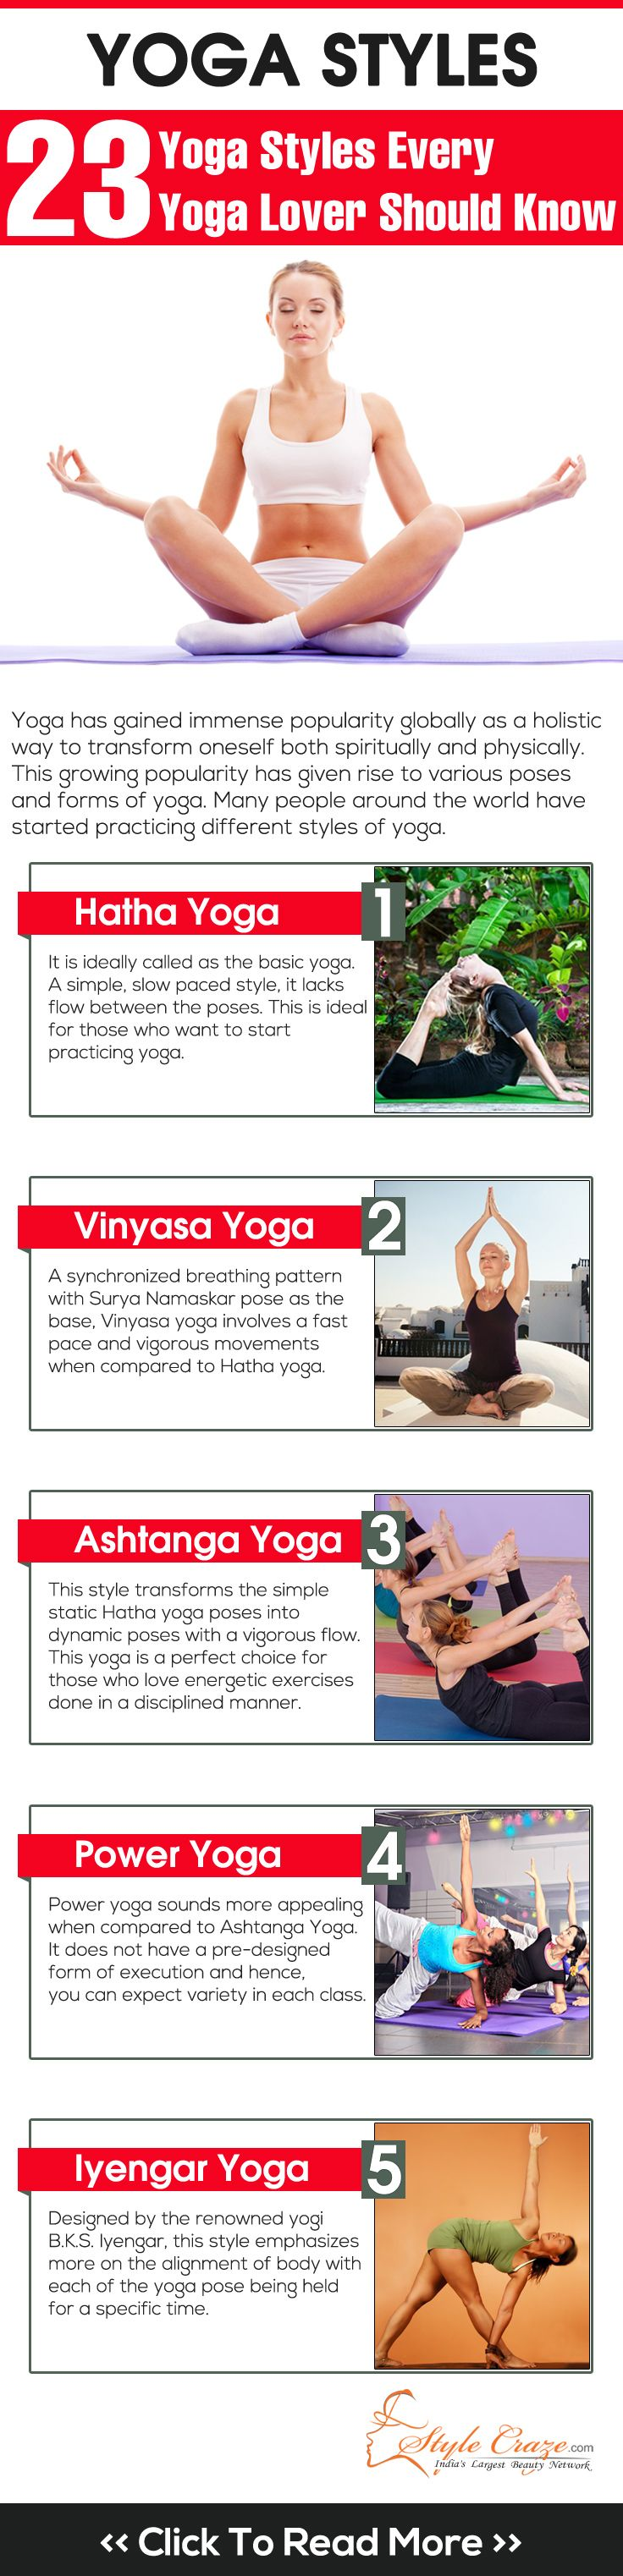 23 Yoga Styles Every Yoga Lover Should Know